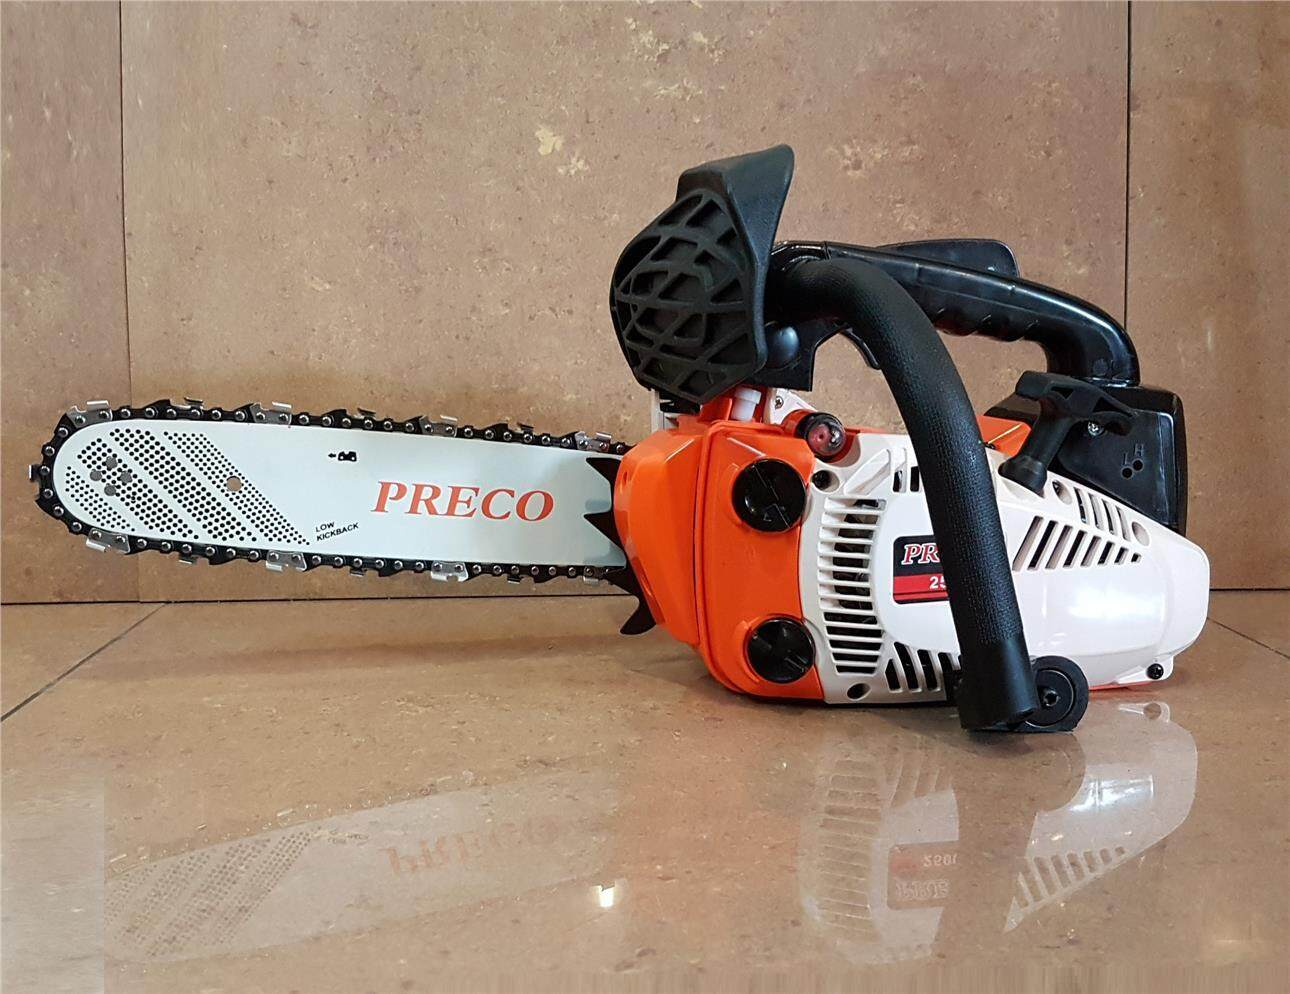 Preco 12 Chain Saw (portable, Powerful,price Reasonable) By Ace Machinery Trading.